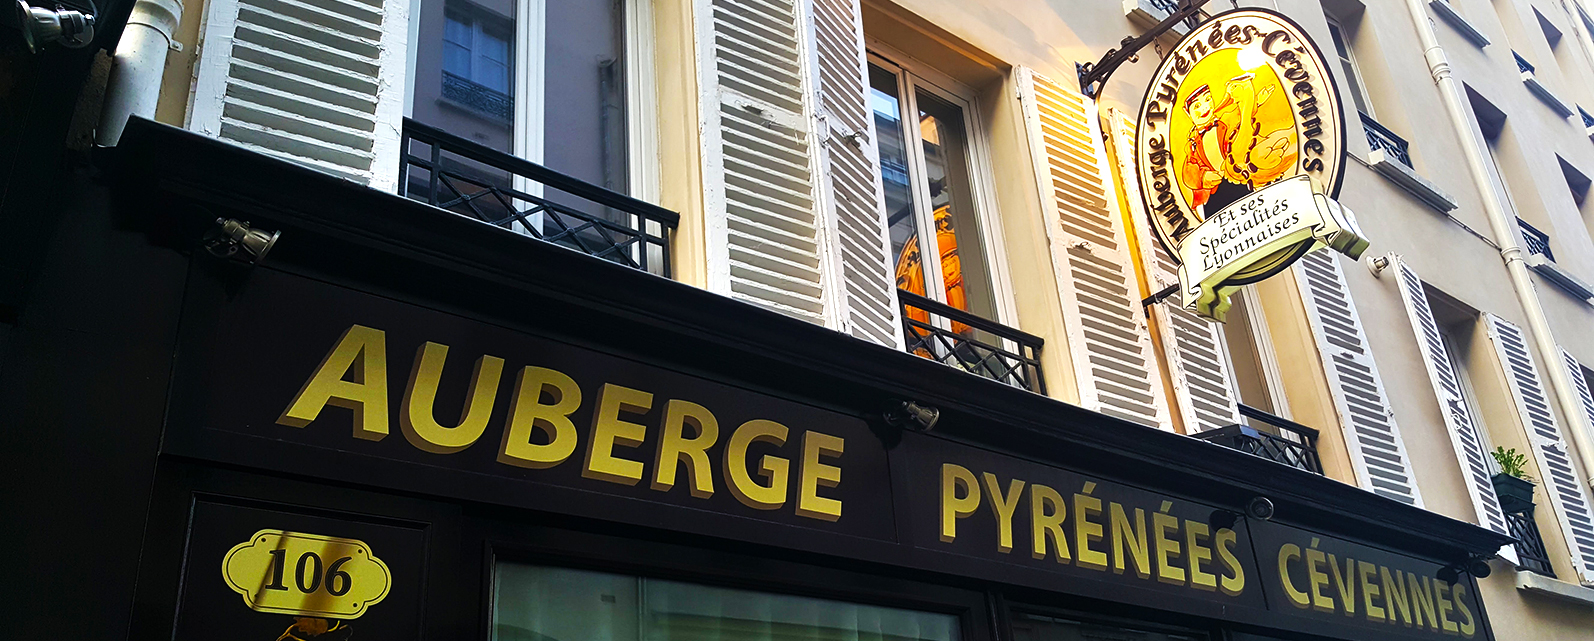 Auberge Pyrenées Cévennes - 106 Rue de la Folie Méricourt 75011 Paris (Low Carb in Paris) - Cooking Shit in Paris